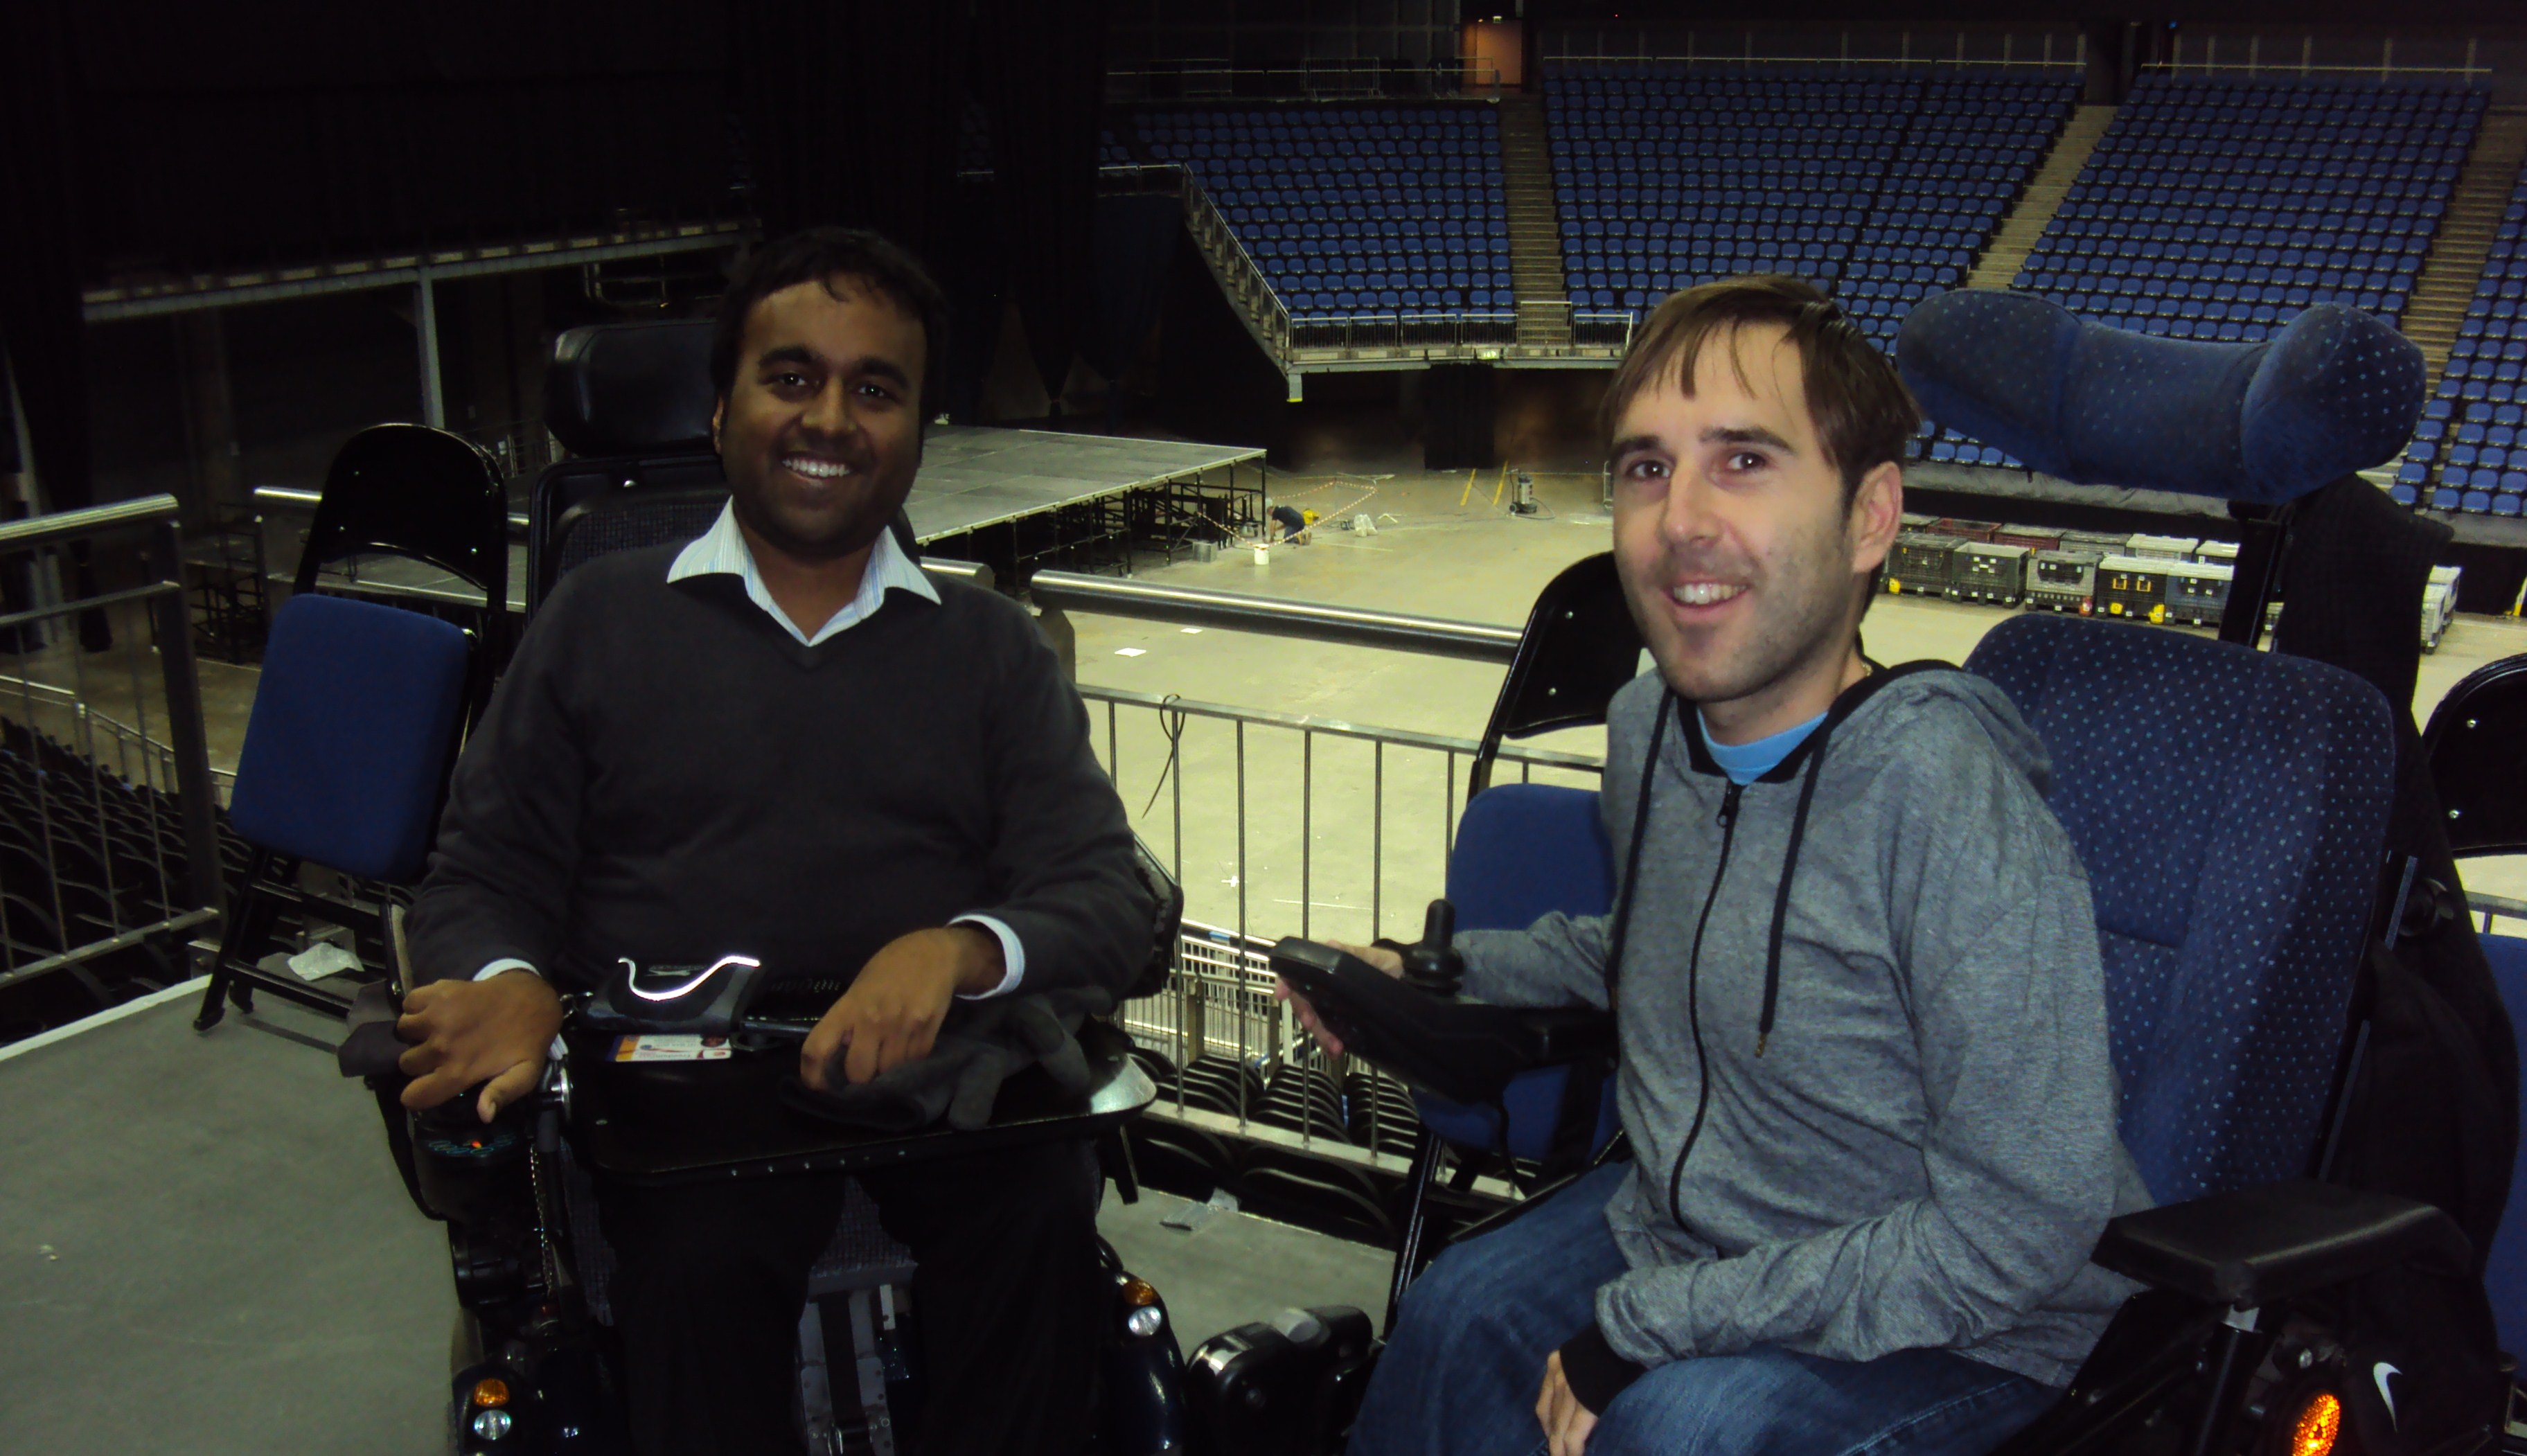 horizons goes on tour at the o2 arena disability horizons goes on tour at the o2 arena